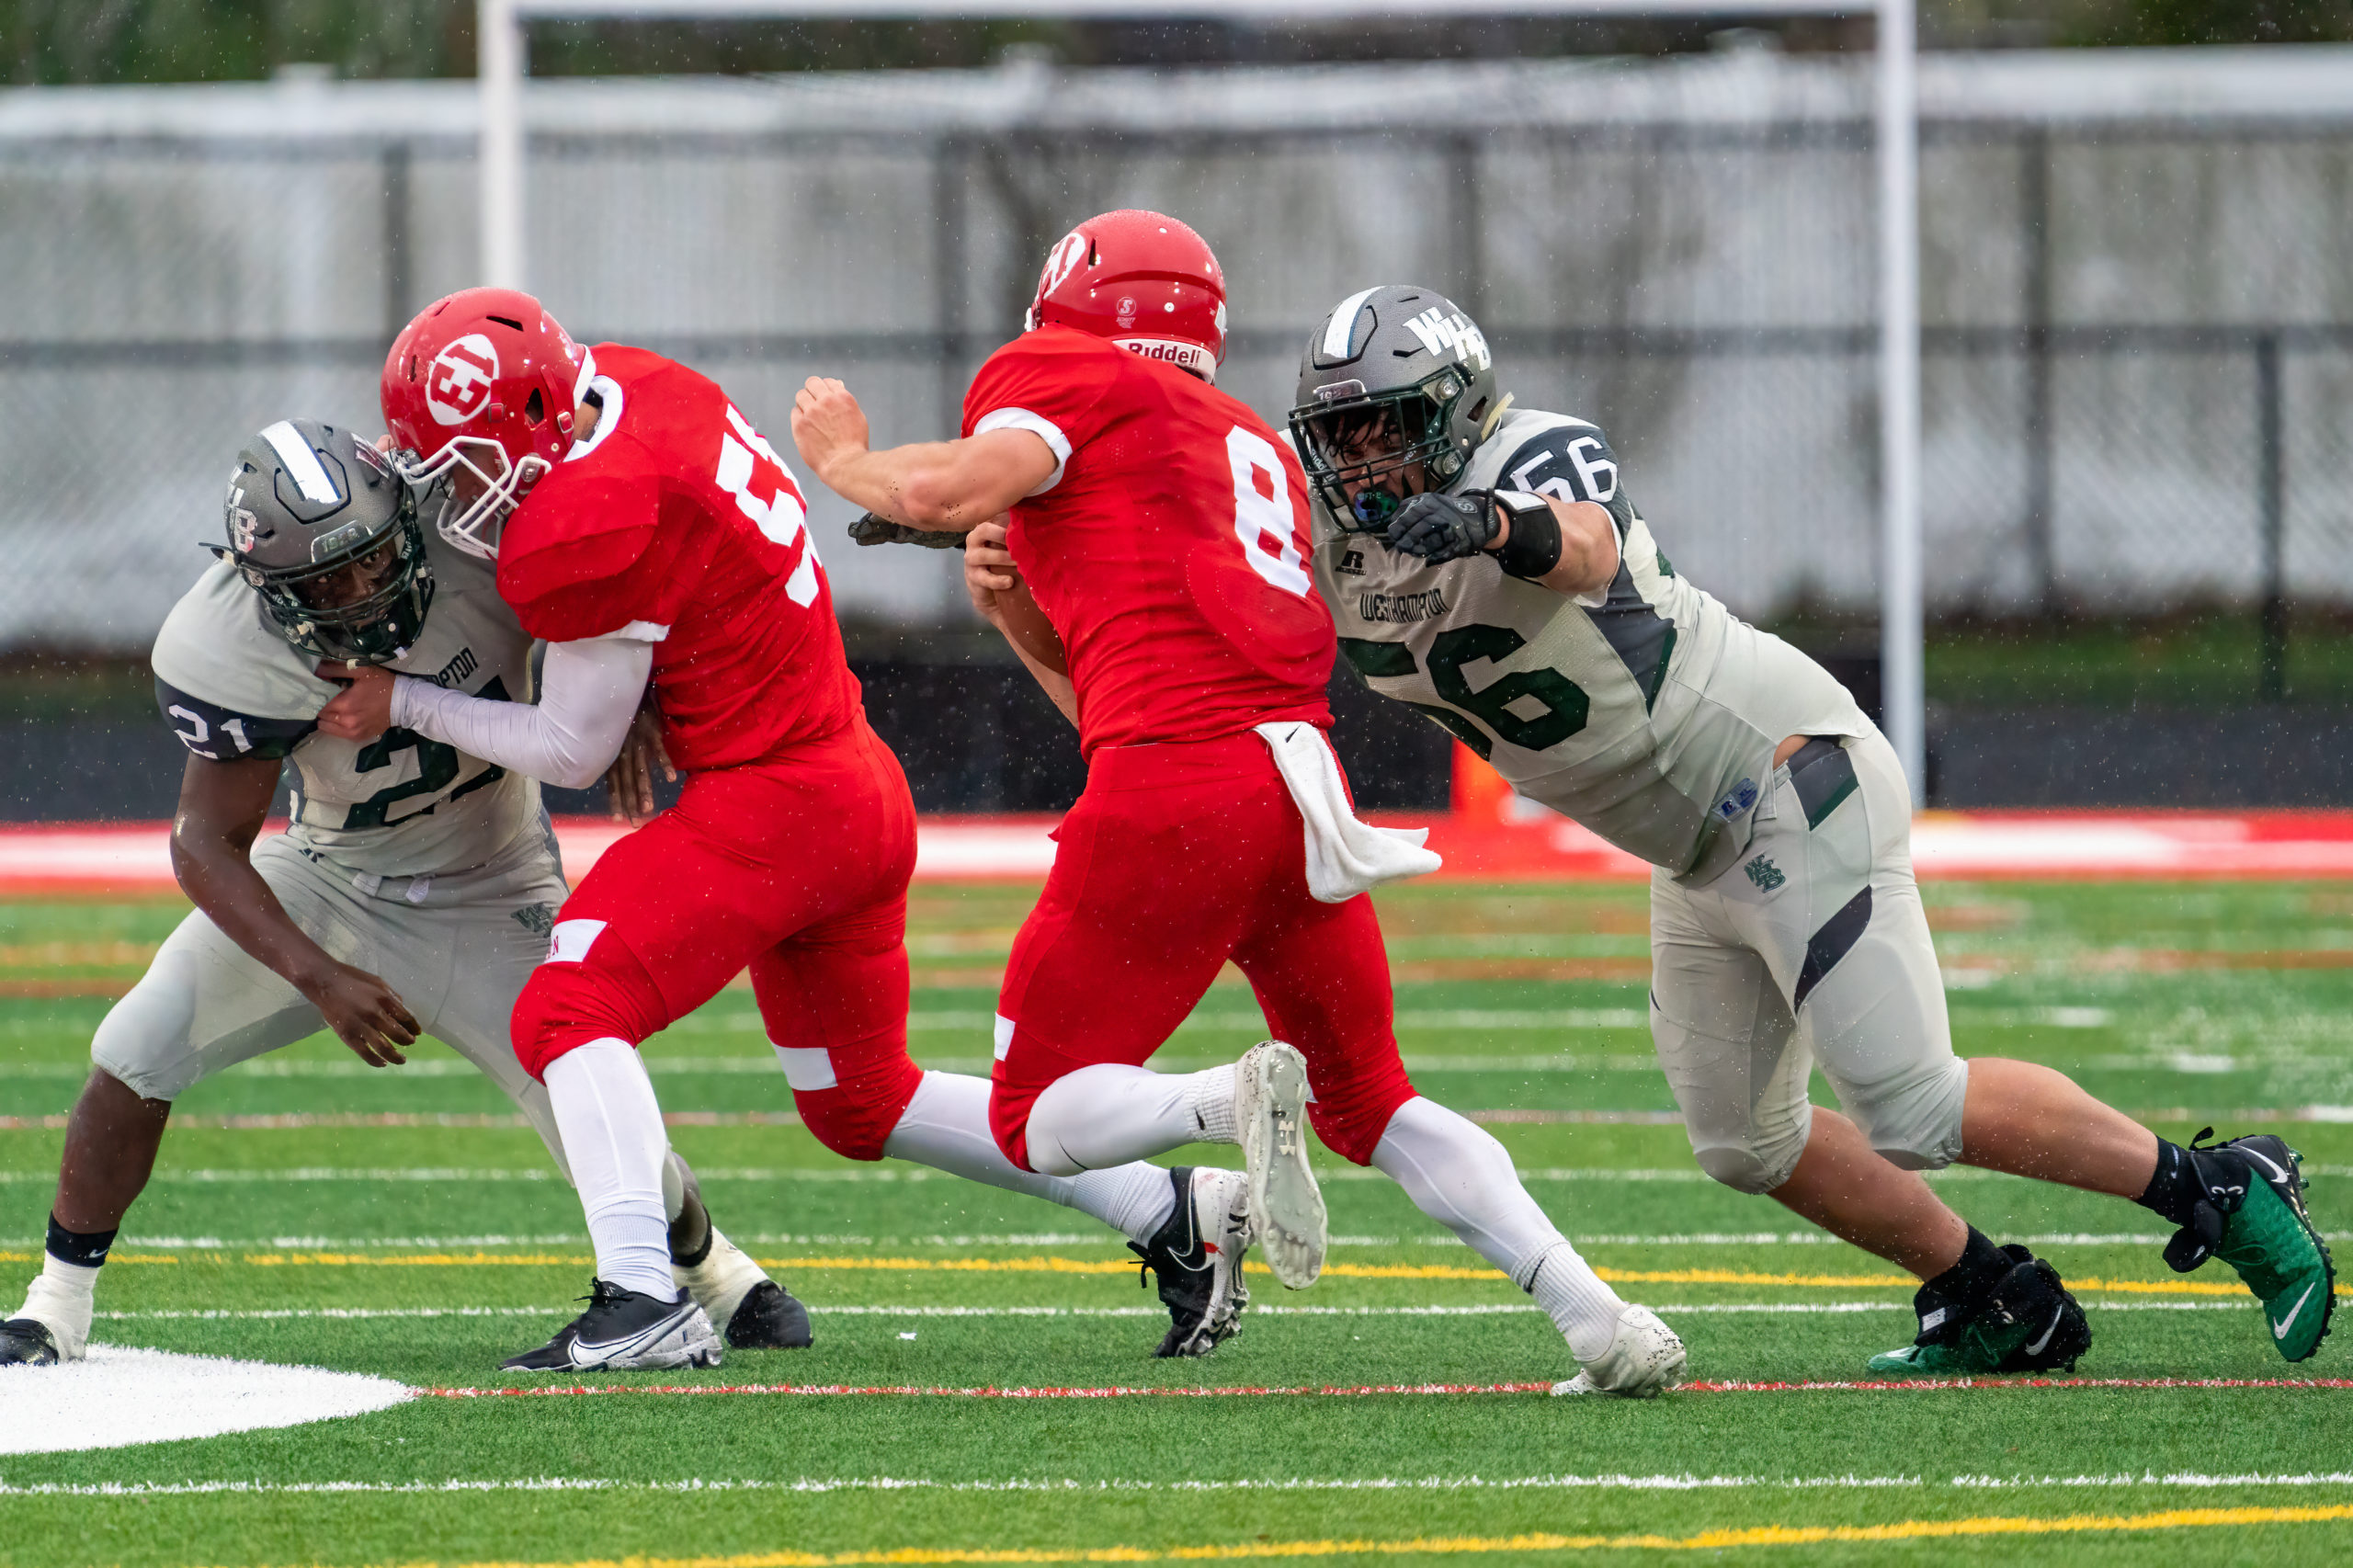 James Foster of Westhampton Beach goes to wrap up East Islip quarterback Steven Stassi.